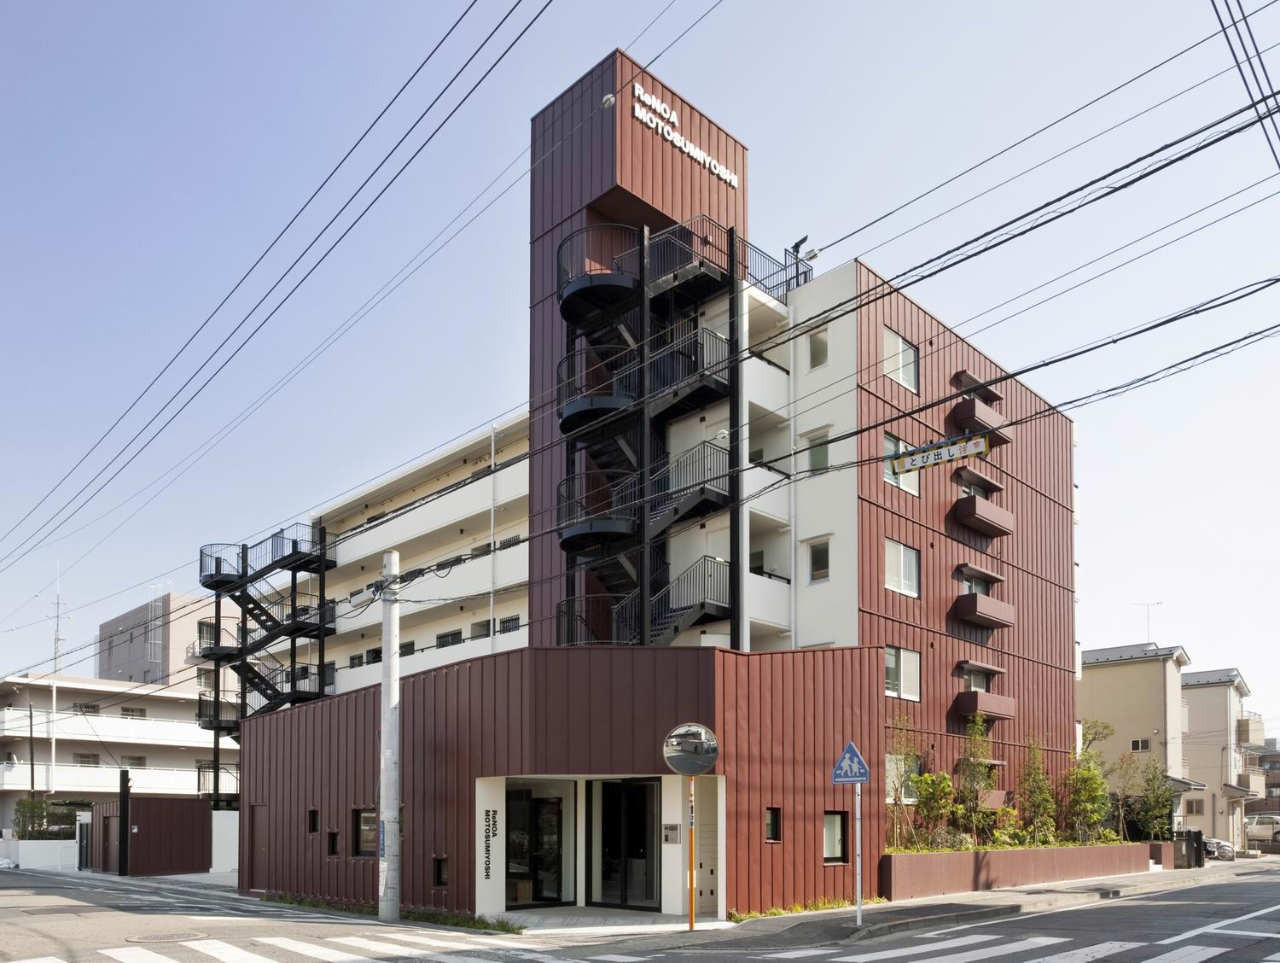 ReNOA Motosumiyoshi / KEY OPERATION INC., © KEY OPERATION INC. / ARCHITECTS + ReBITA Inc.